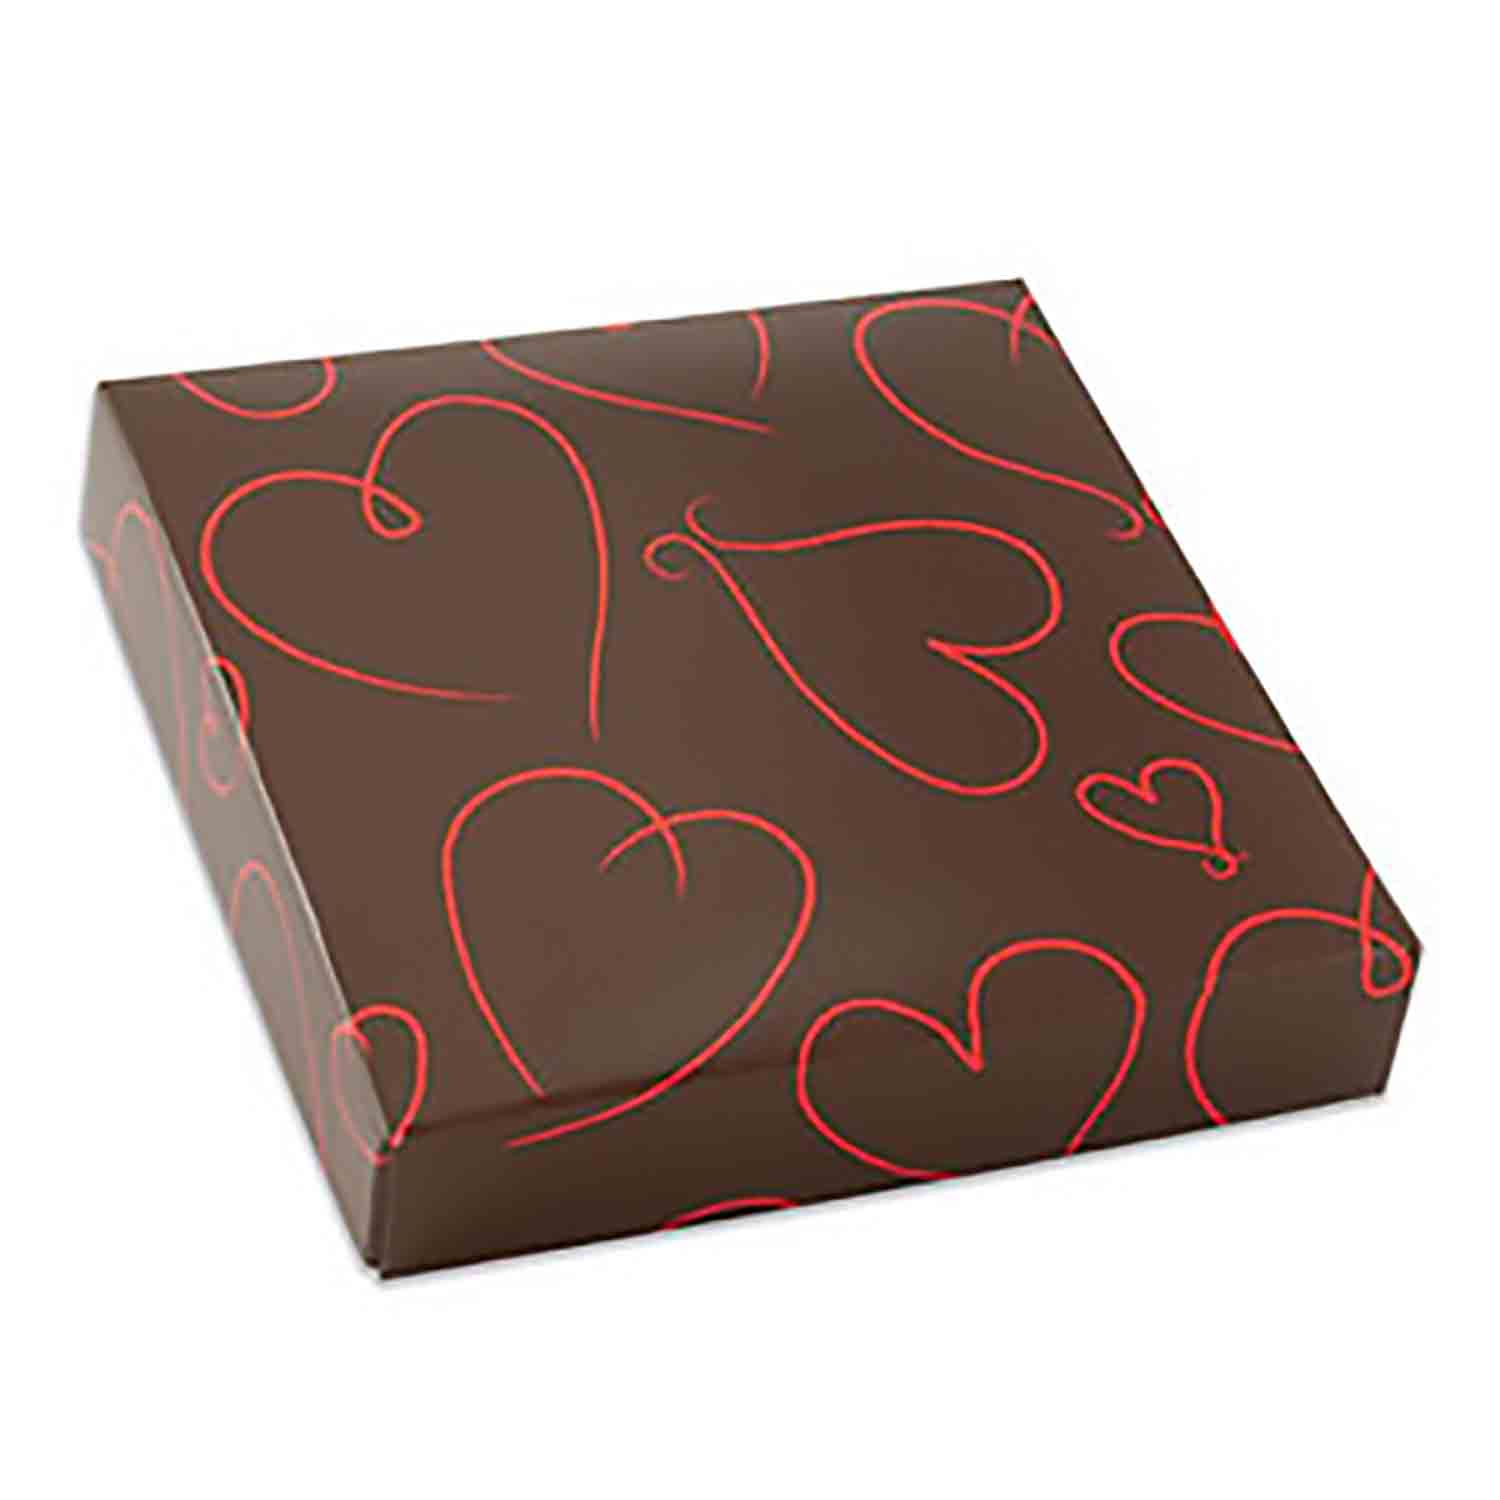 1/2 lb. Hearts Candy Box